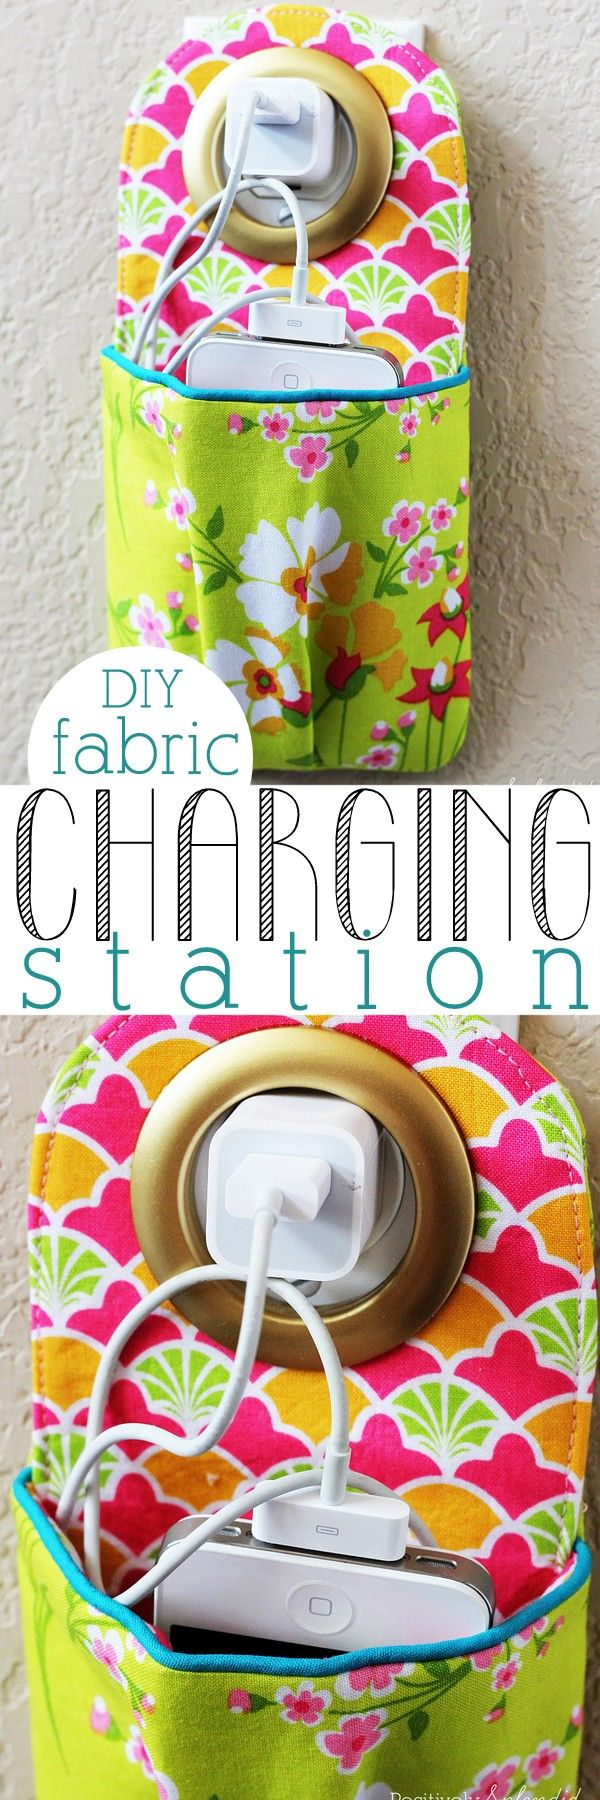 Classy sewing patterns diy fabric phone charging station Diy cell phone charging station